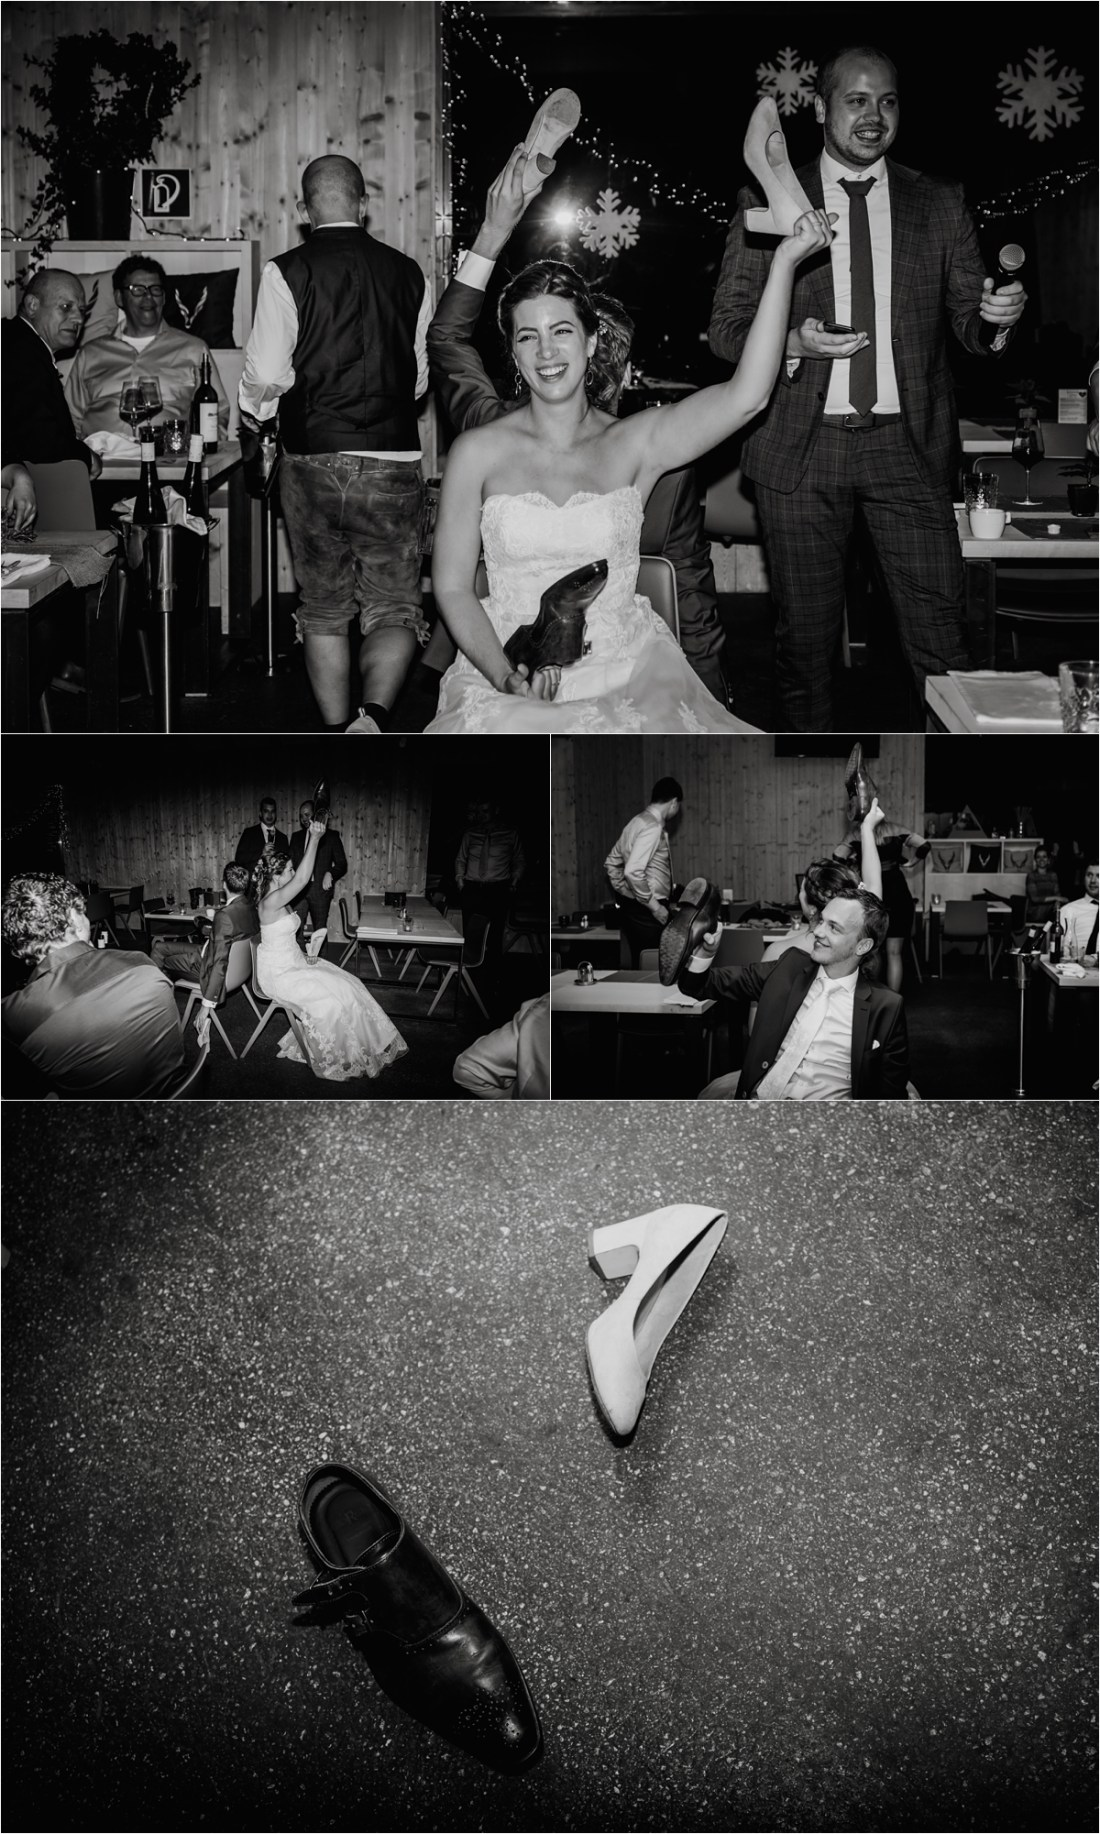 Bride and groom play the shoe game after their wedding dinner at the Schmiedhofalm by Wild Connections Photography